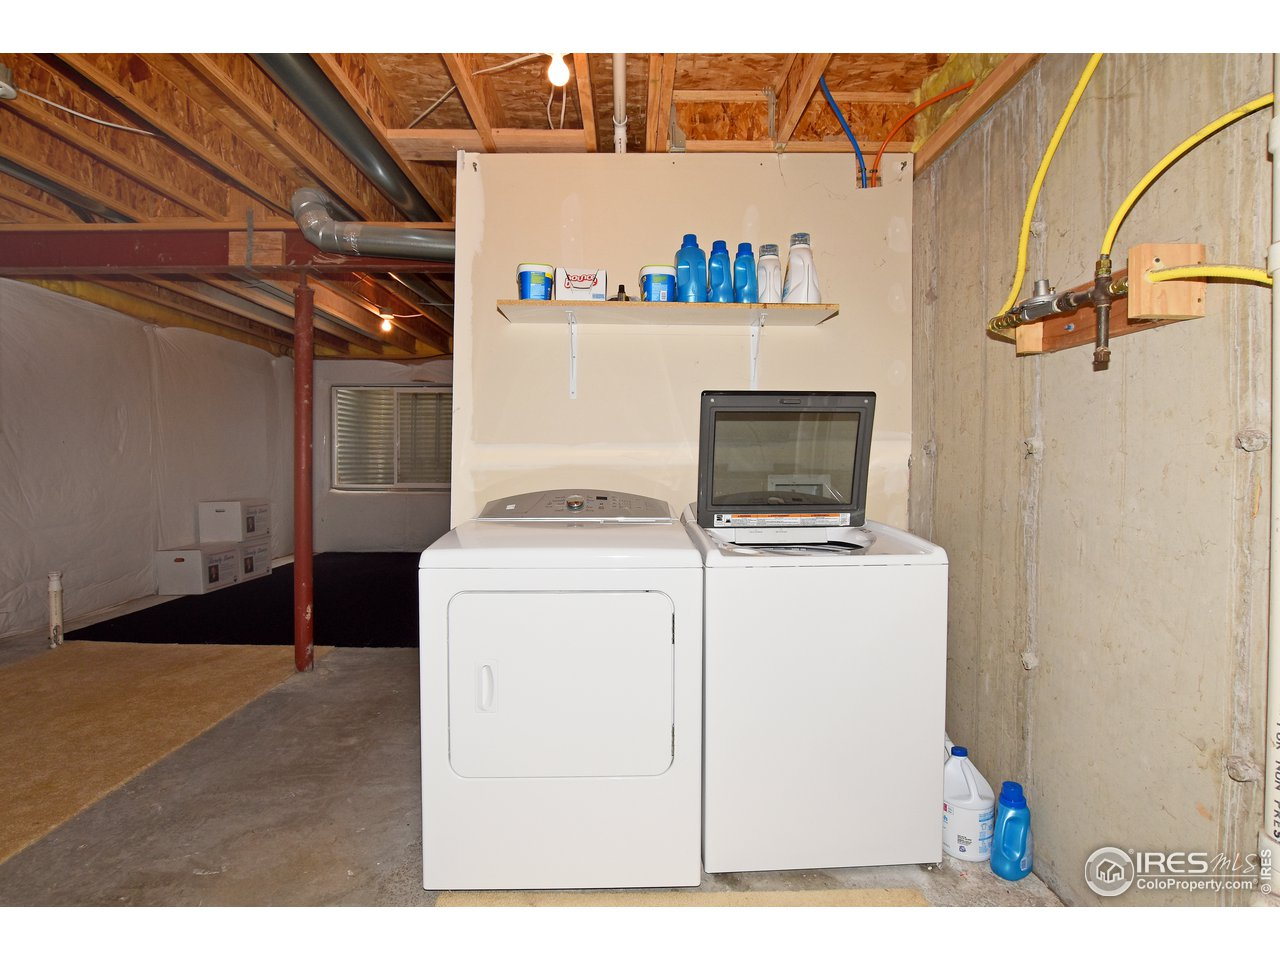 Clothes washer and dryer are included.